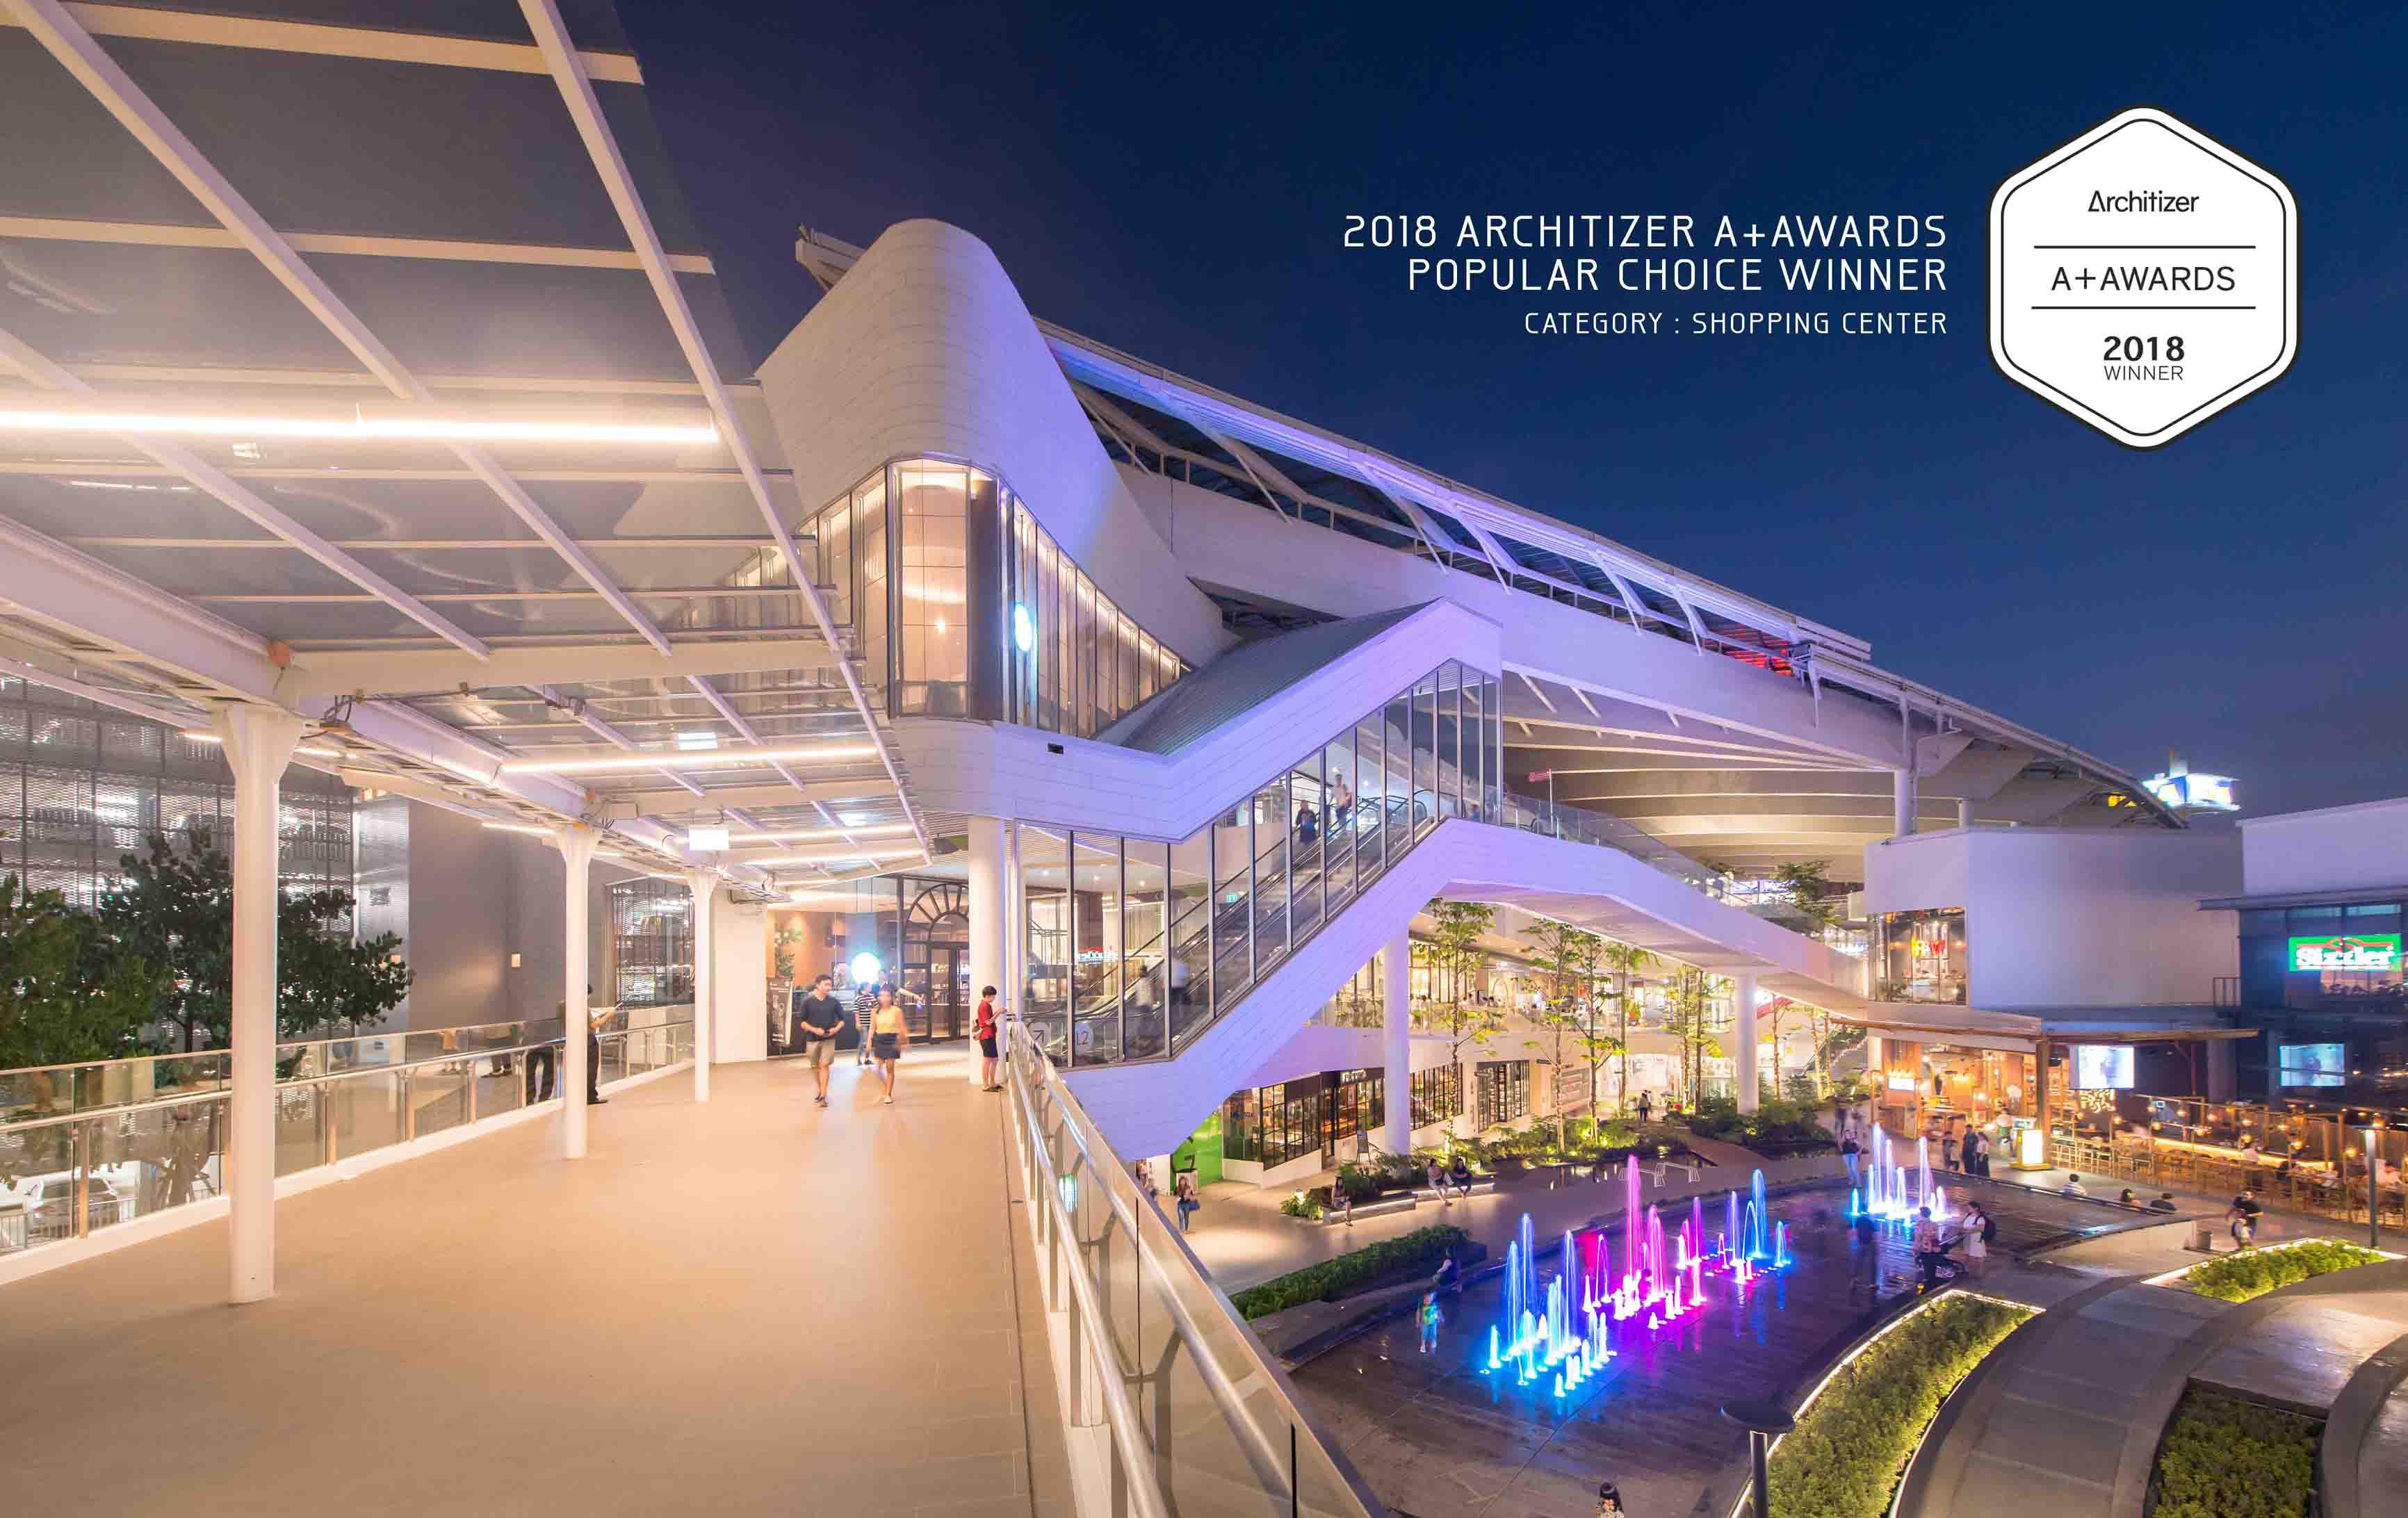 MEGA FOODWALK WINS 2018 ARCHITIZER A+AWARDS : POPULAR CHOICE-SHOPPING CENTER